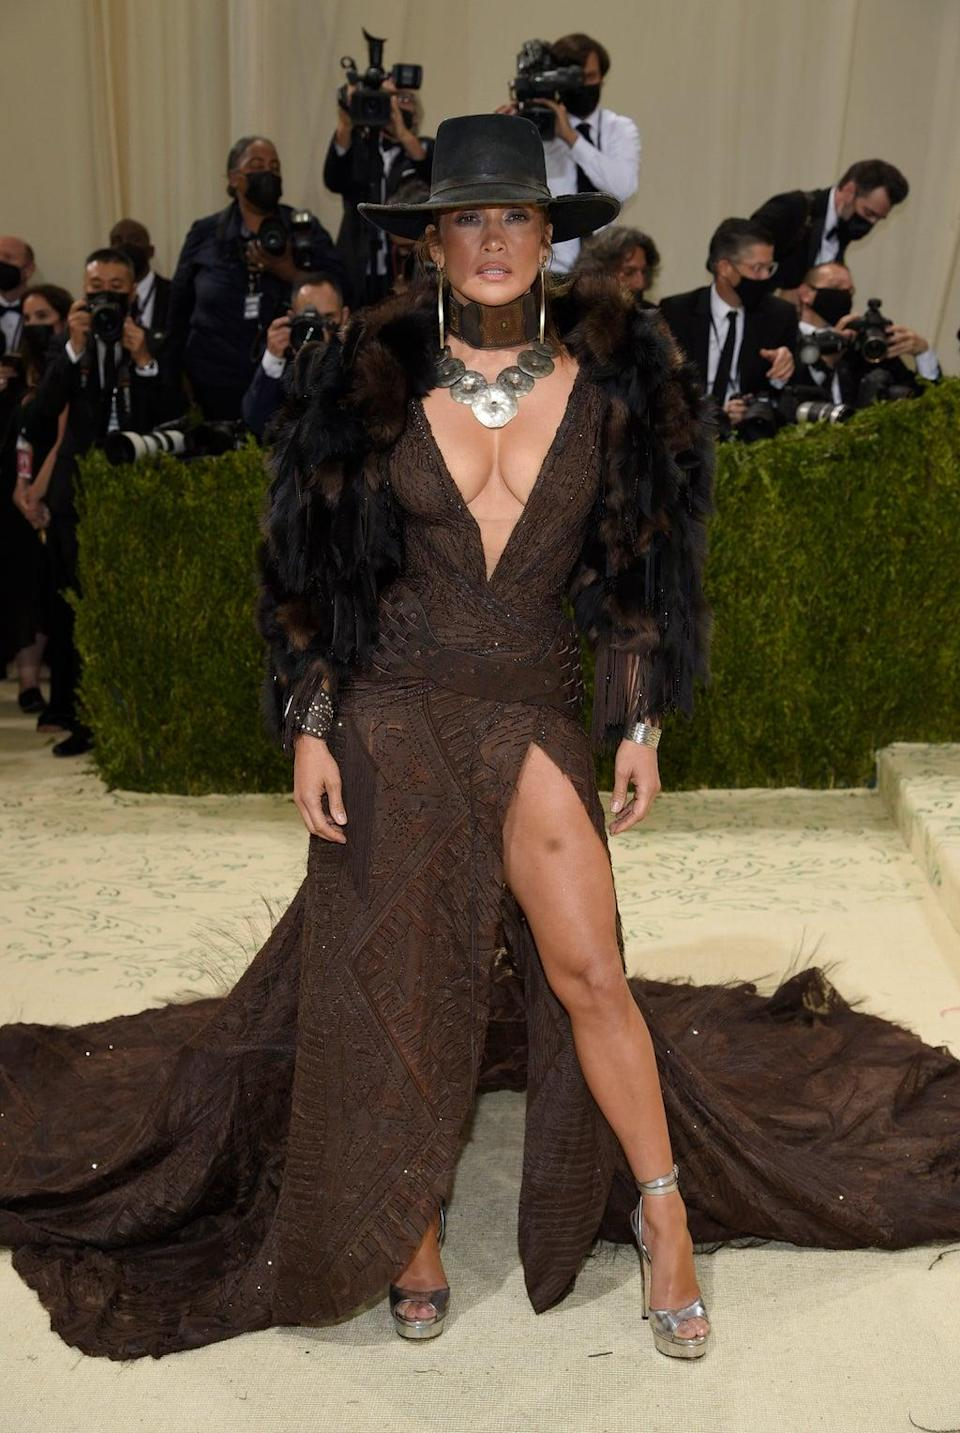 Jennifer Lopez seemed to reference the Wild West at a Met Gala celebrating American fashion (Evan Agostini/Invision/AP) (AP)